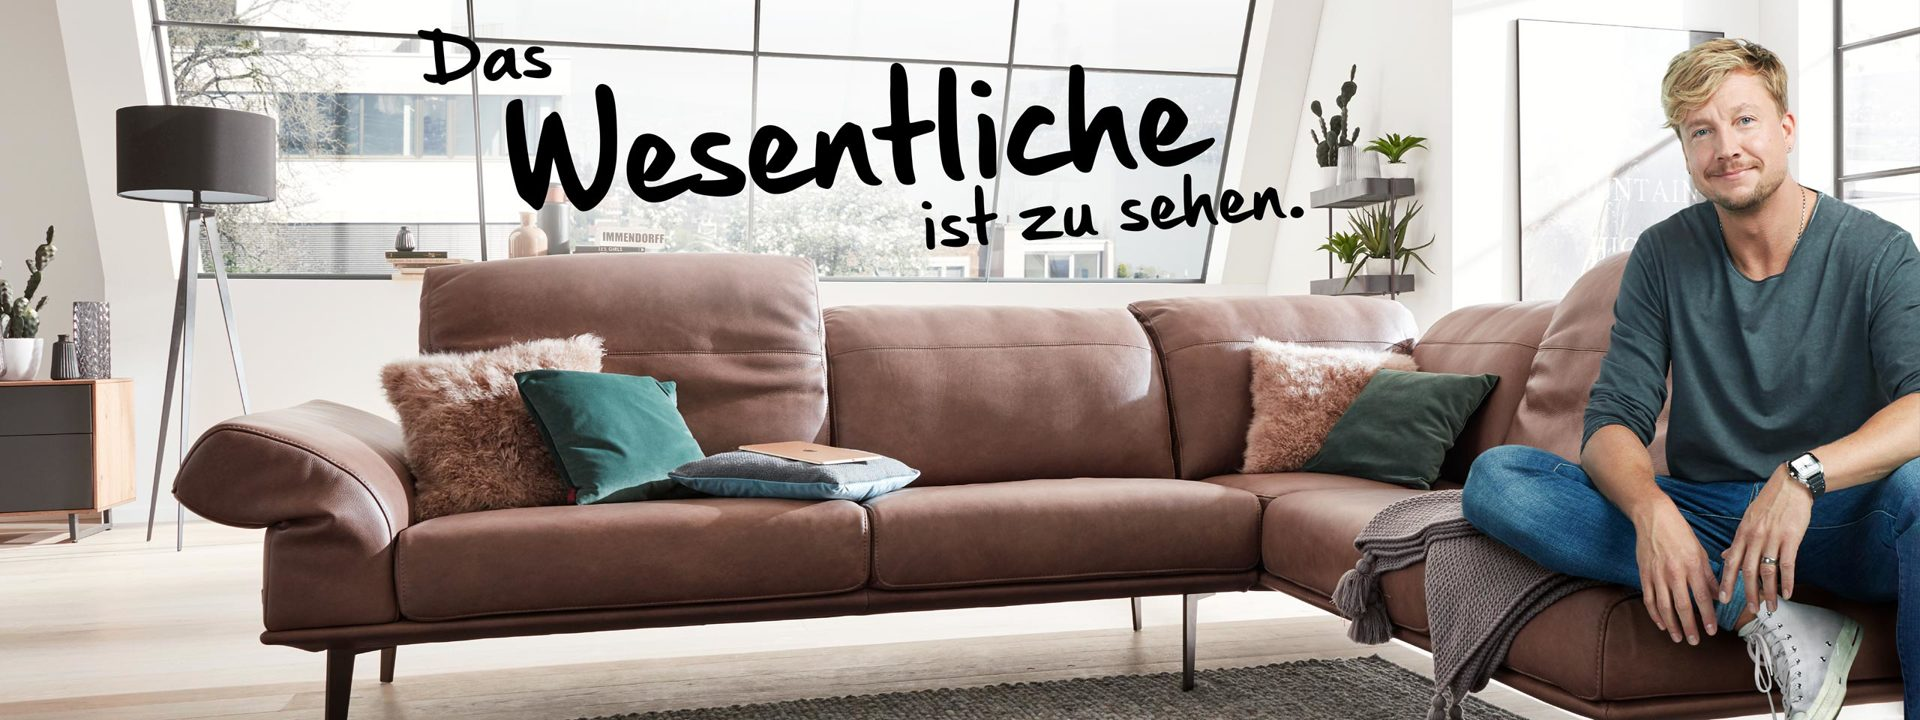 Interliving Sofa Serie 4003 Samu Haber2020 HF Highlight16 6